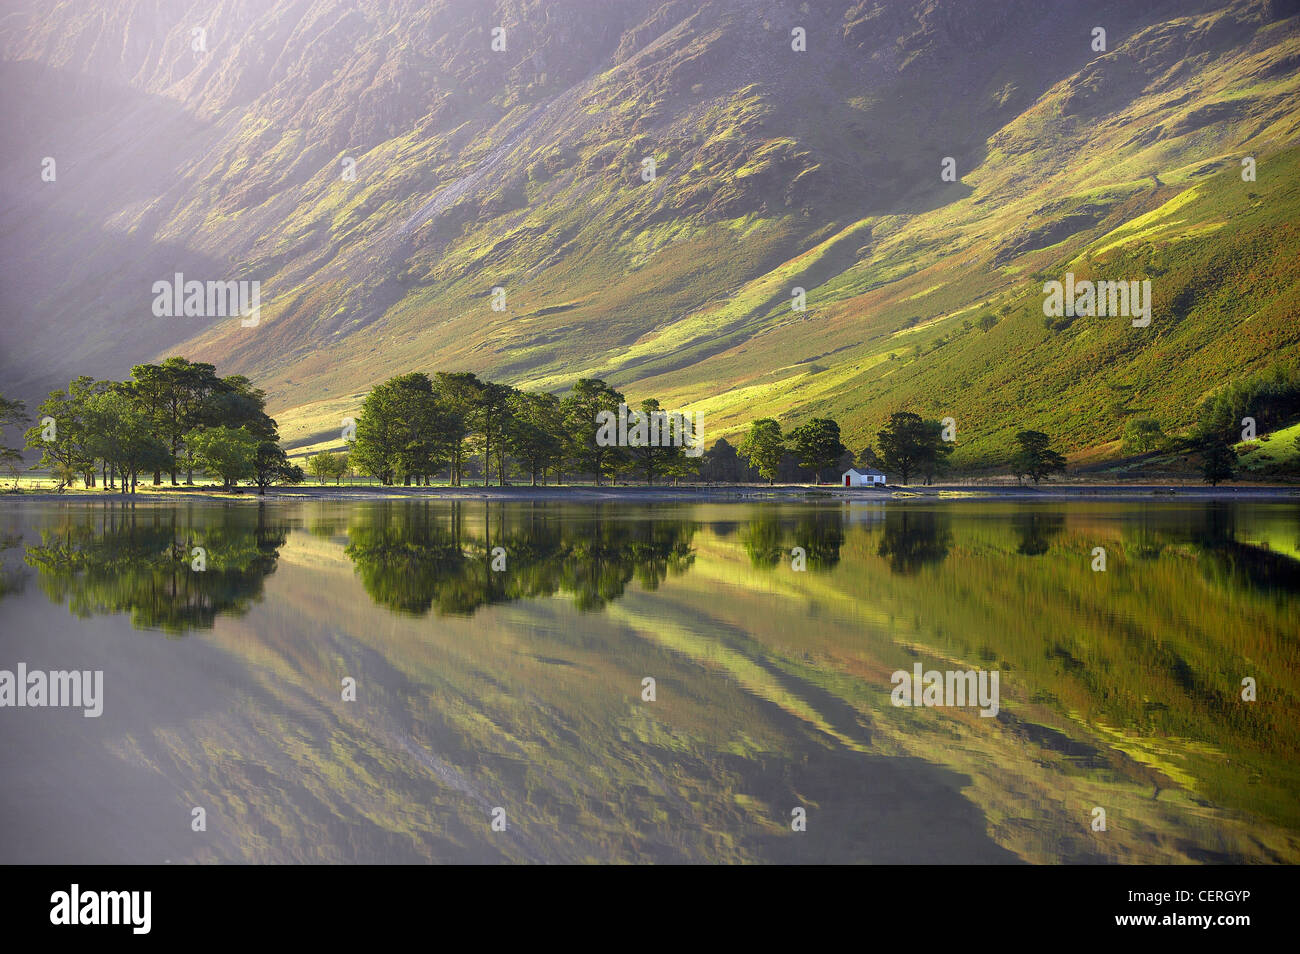 Reflexionen über die Ufer Buttermere bei Dämmerung, Cumbria, Lakes District, Cumbria, England, UK Stockfoto